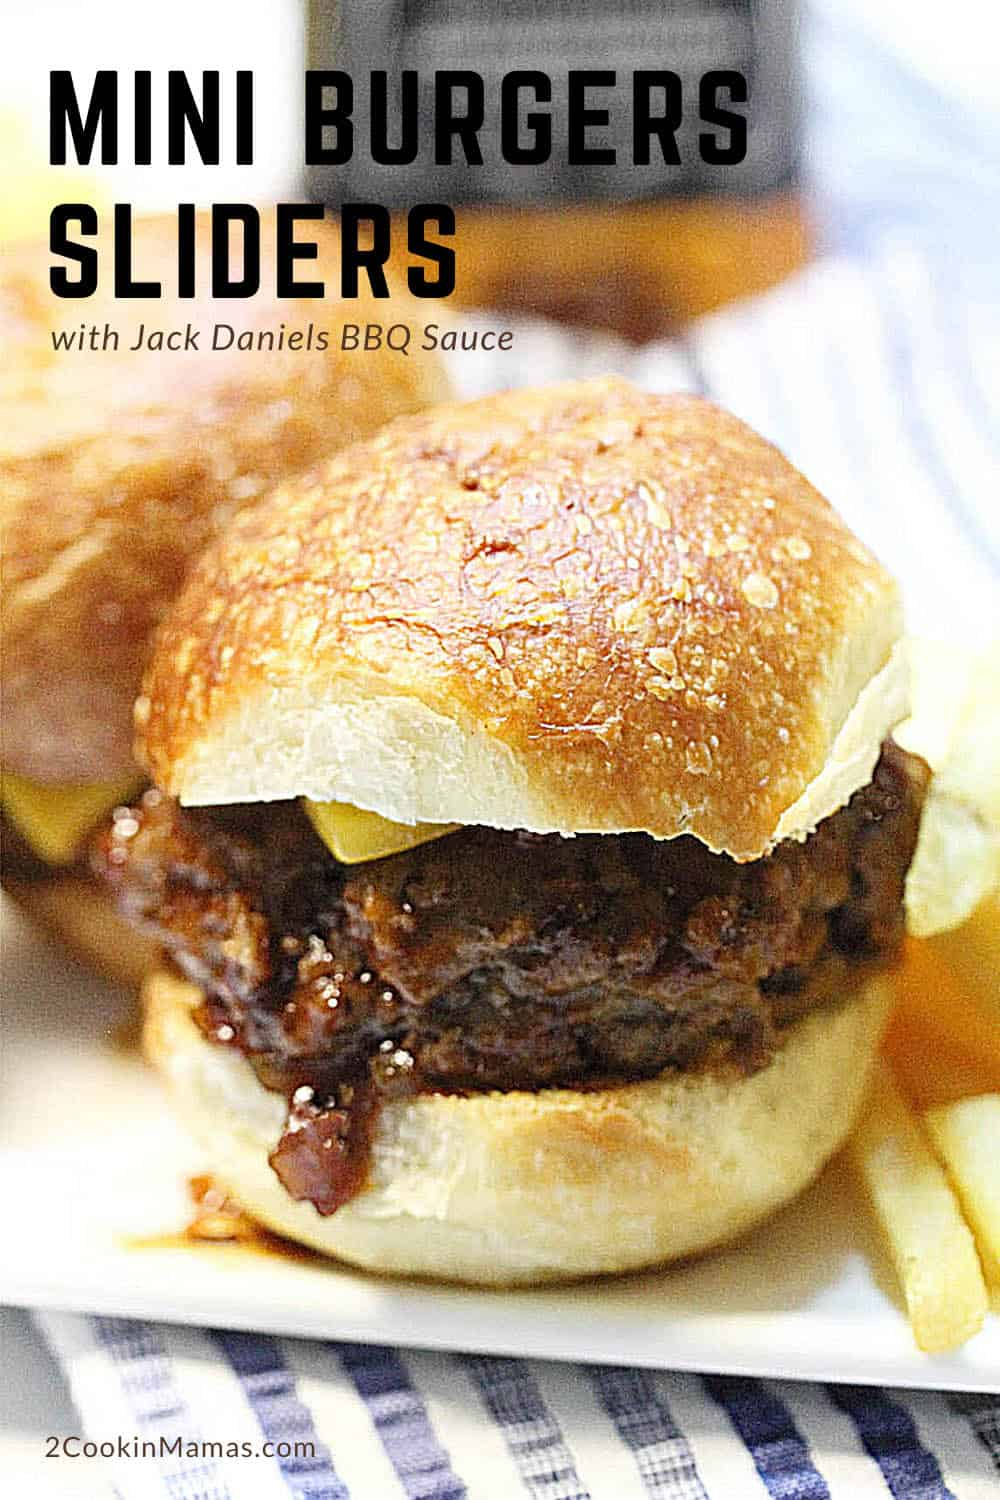 Mini Burgers Sliders with Jack Daniels BBQ Sauce